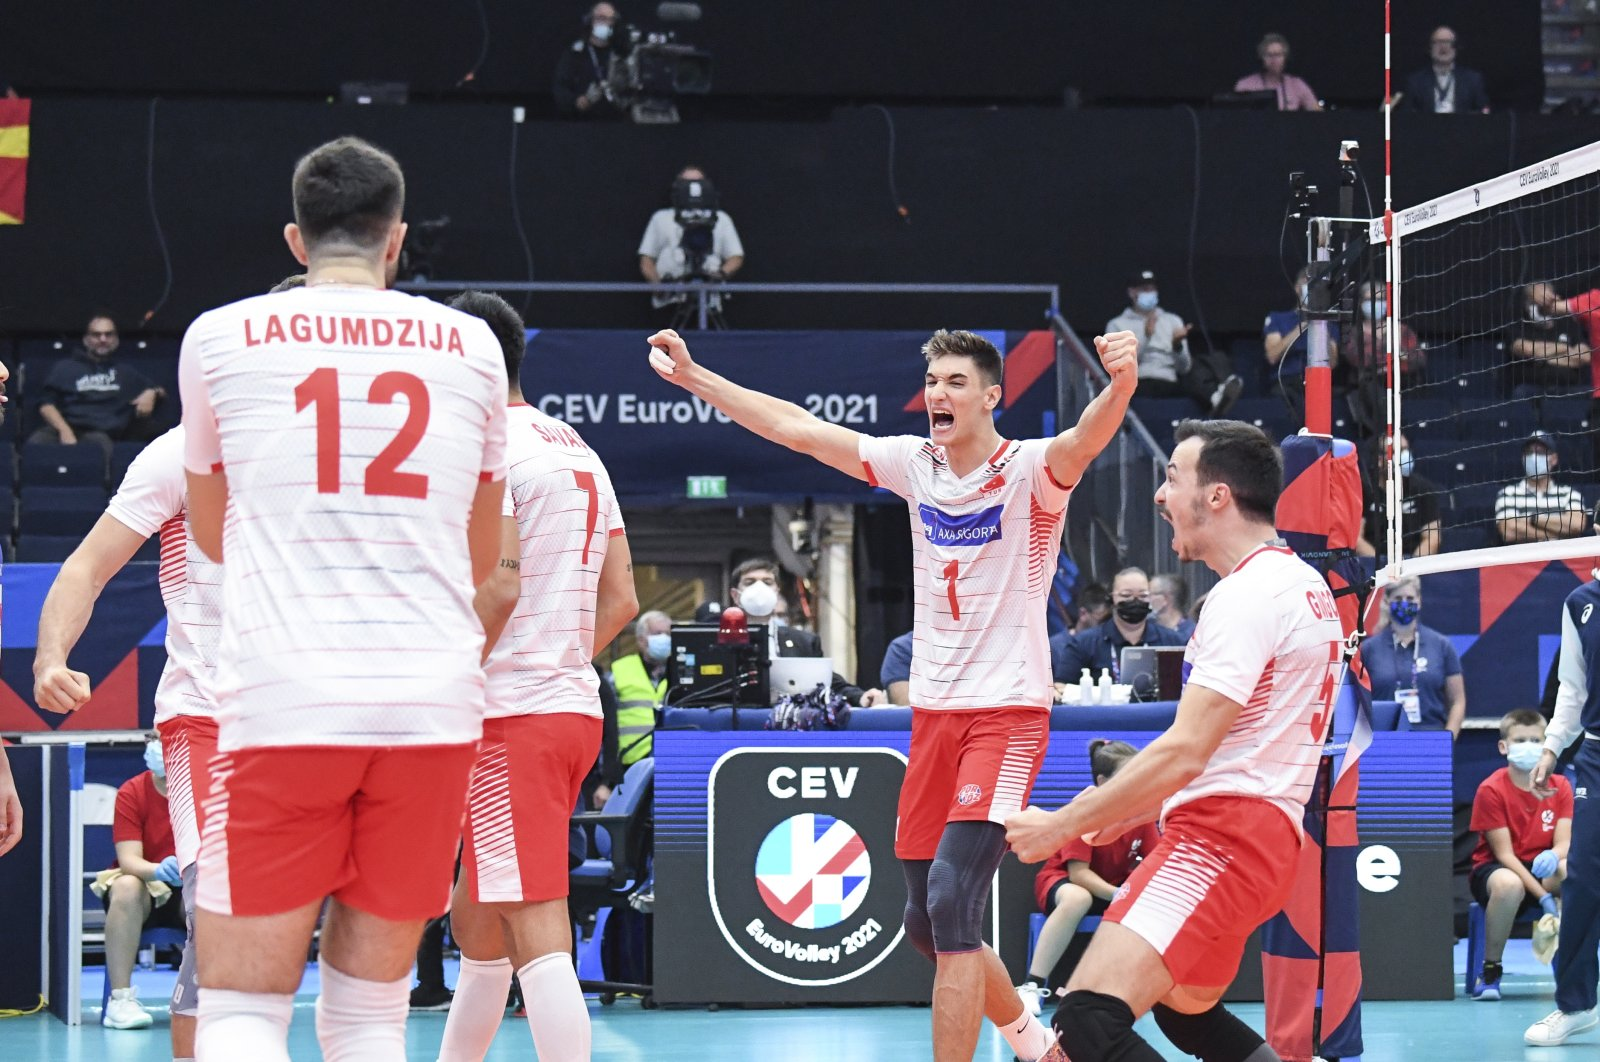 Turkish players react during the 2021 European Volleyball Championship match against Russia, in Tampere, Finland, Sept. 2, 2021. (EPA Photo)